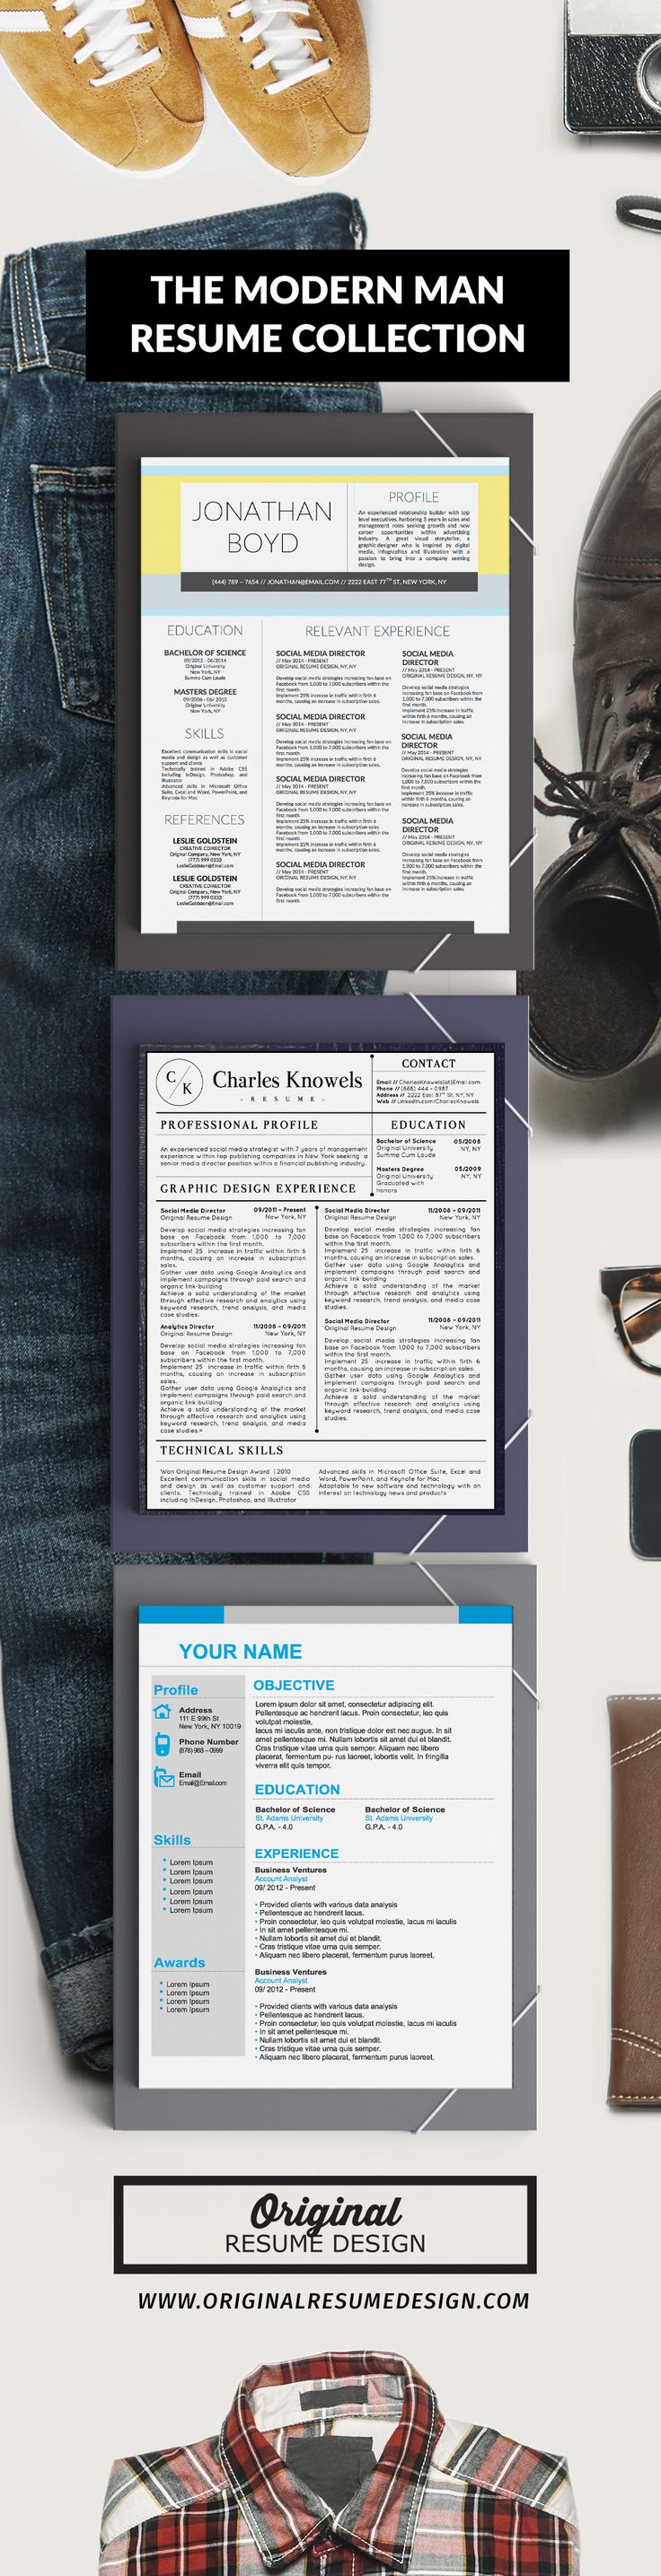 128 best resume images on Pinterest | Resume templates, Resume and ...